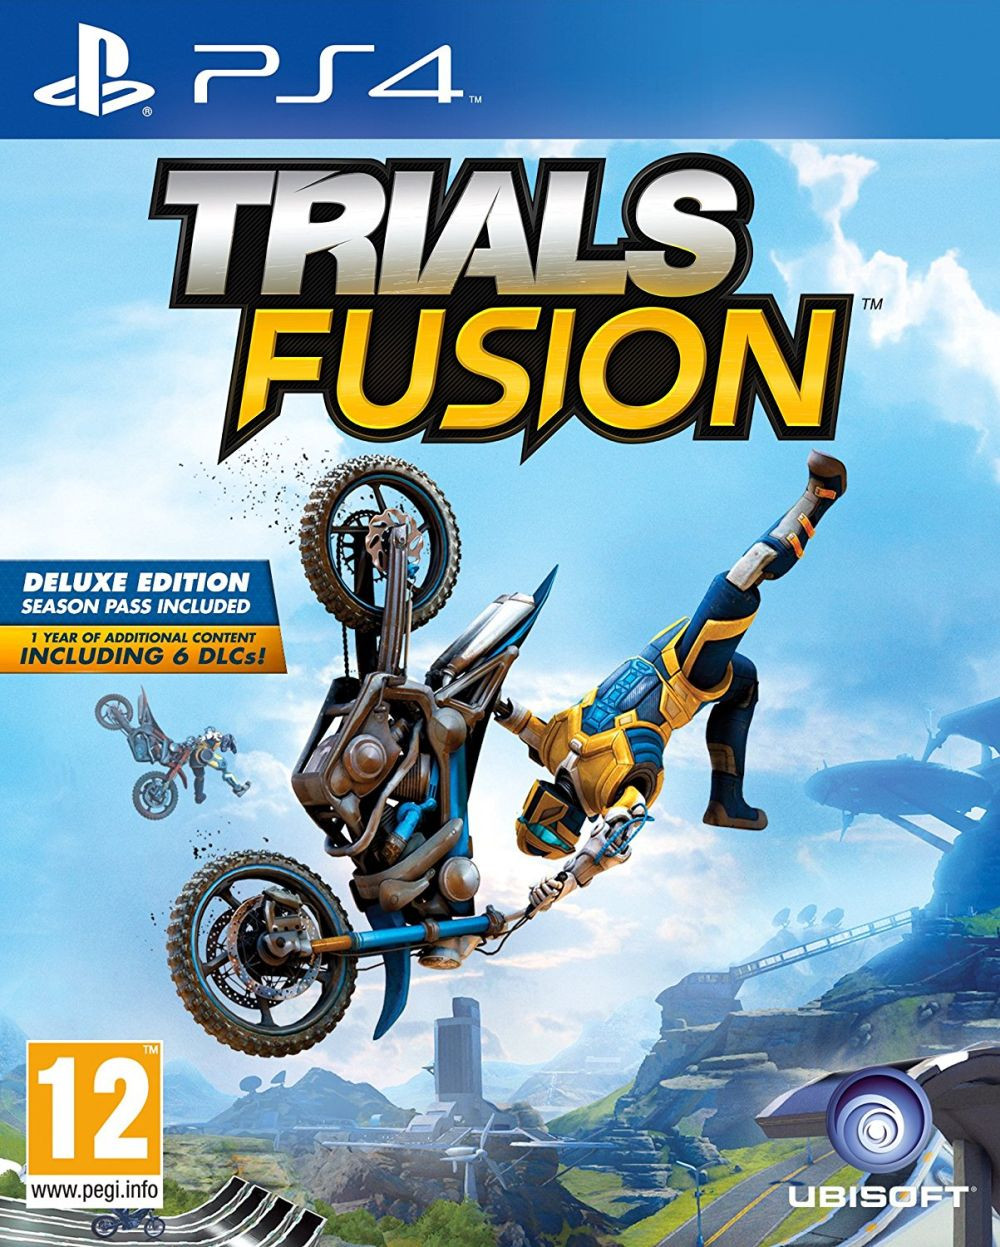 PS4 Trials Fusion